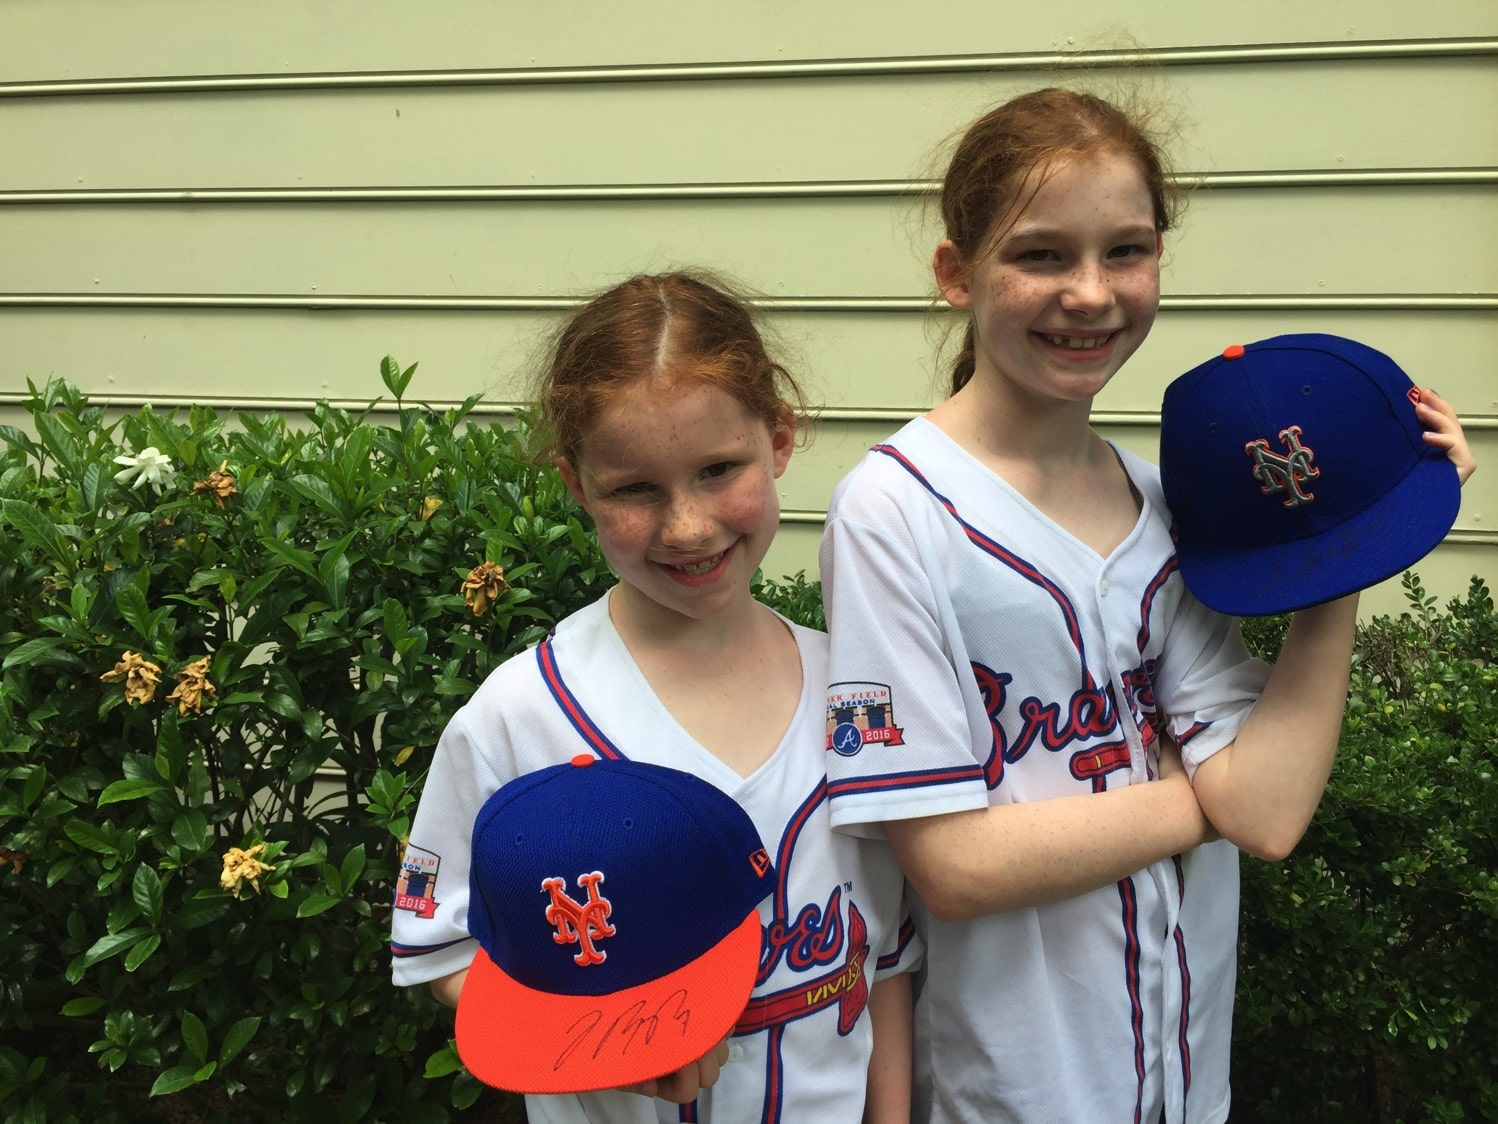 Cap Swap with the Braves and MetsCap Swap with the Braves and Mets